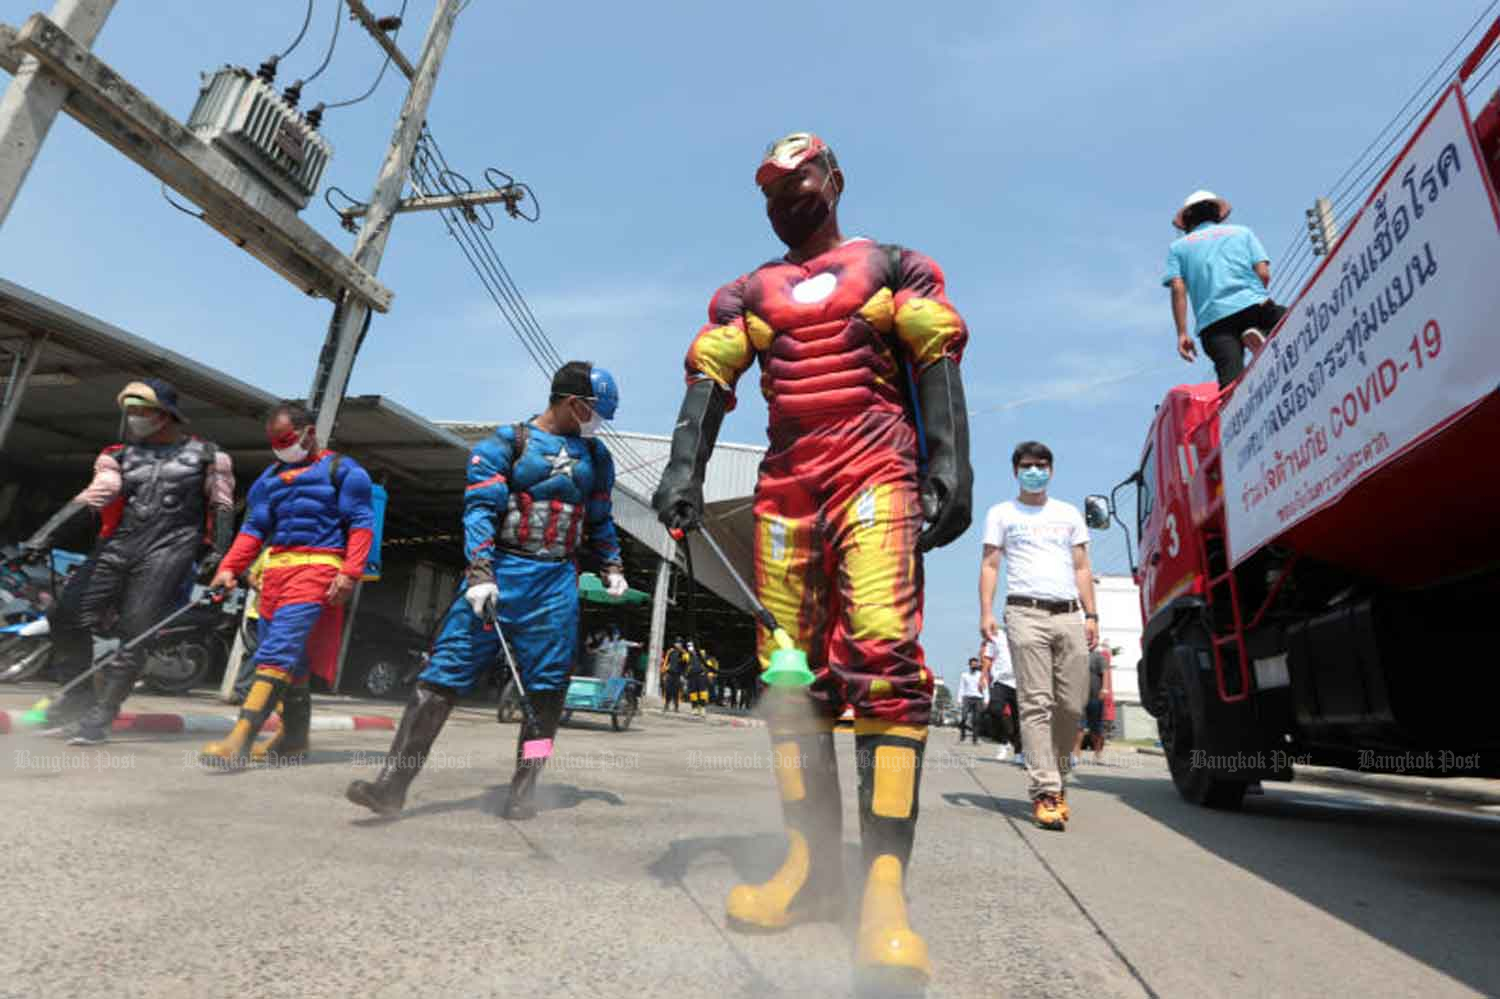 Officials in comic-hero costumes, to add a bit of cheer to sombre times, spray disinfectant at Sap Charoen Thani market in Krathum Baen district of Samut Sakhon province on Friday, part of the campaign to stop the spread of Covid-19. (Photo: Chanat Katanyu)